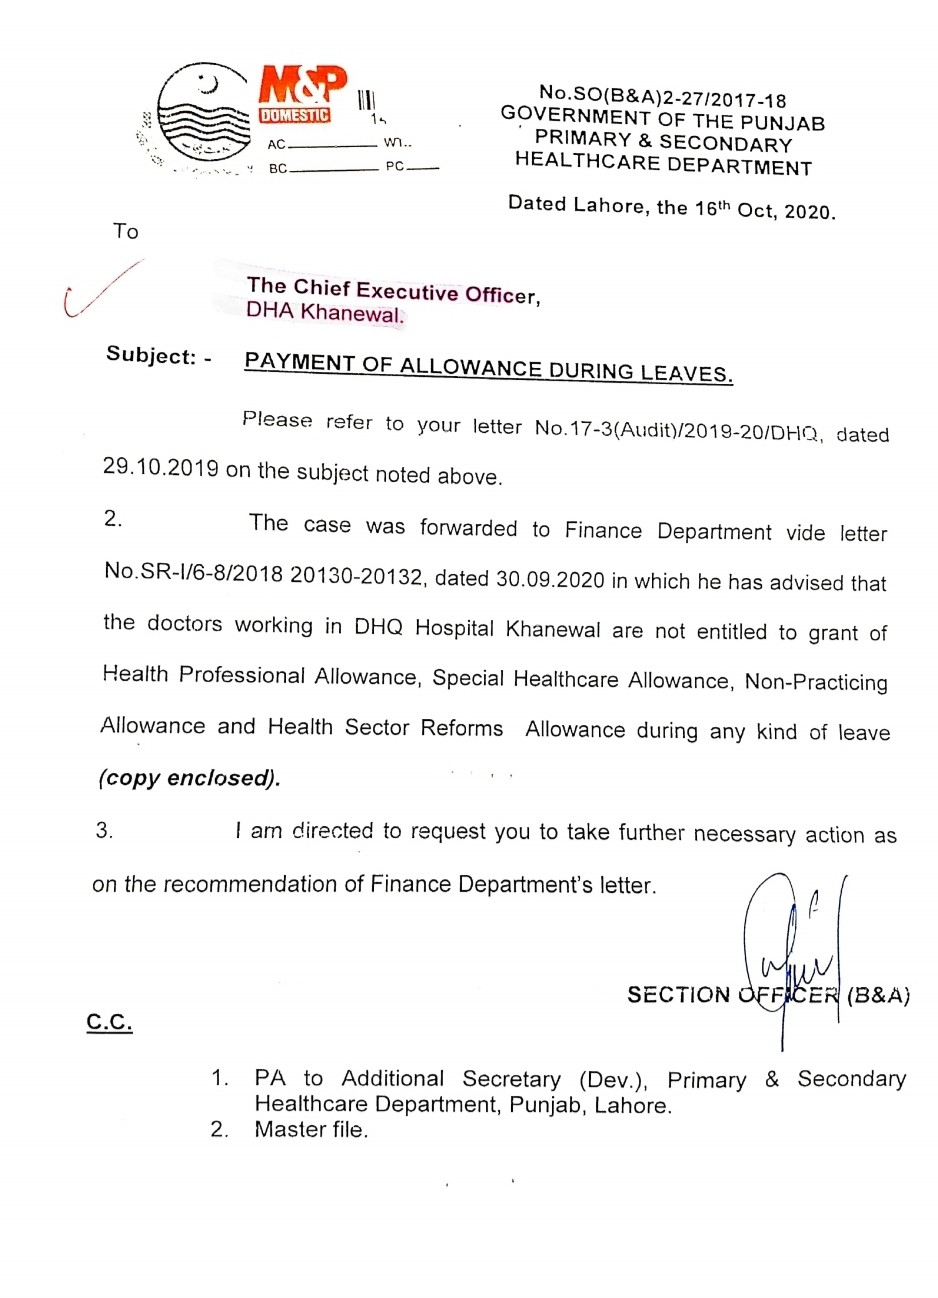 Clarification Payment of Allowances during Leaves Doctors